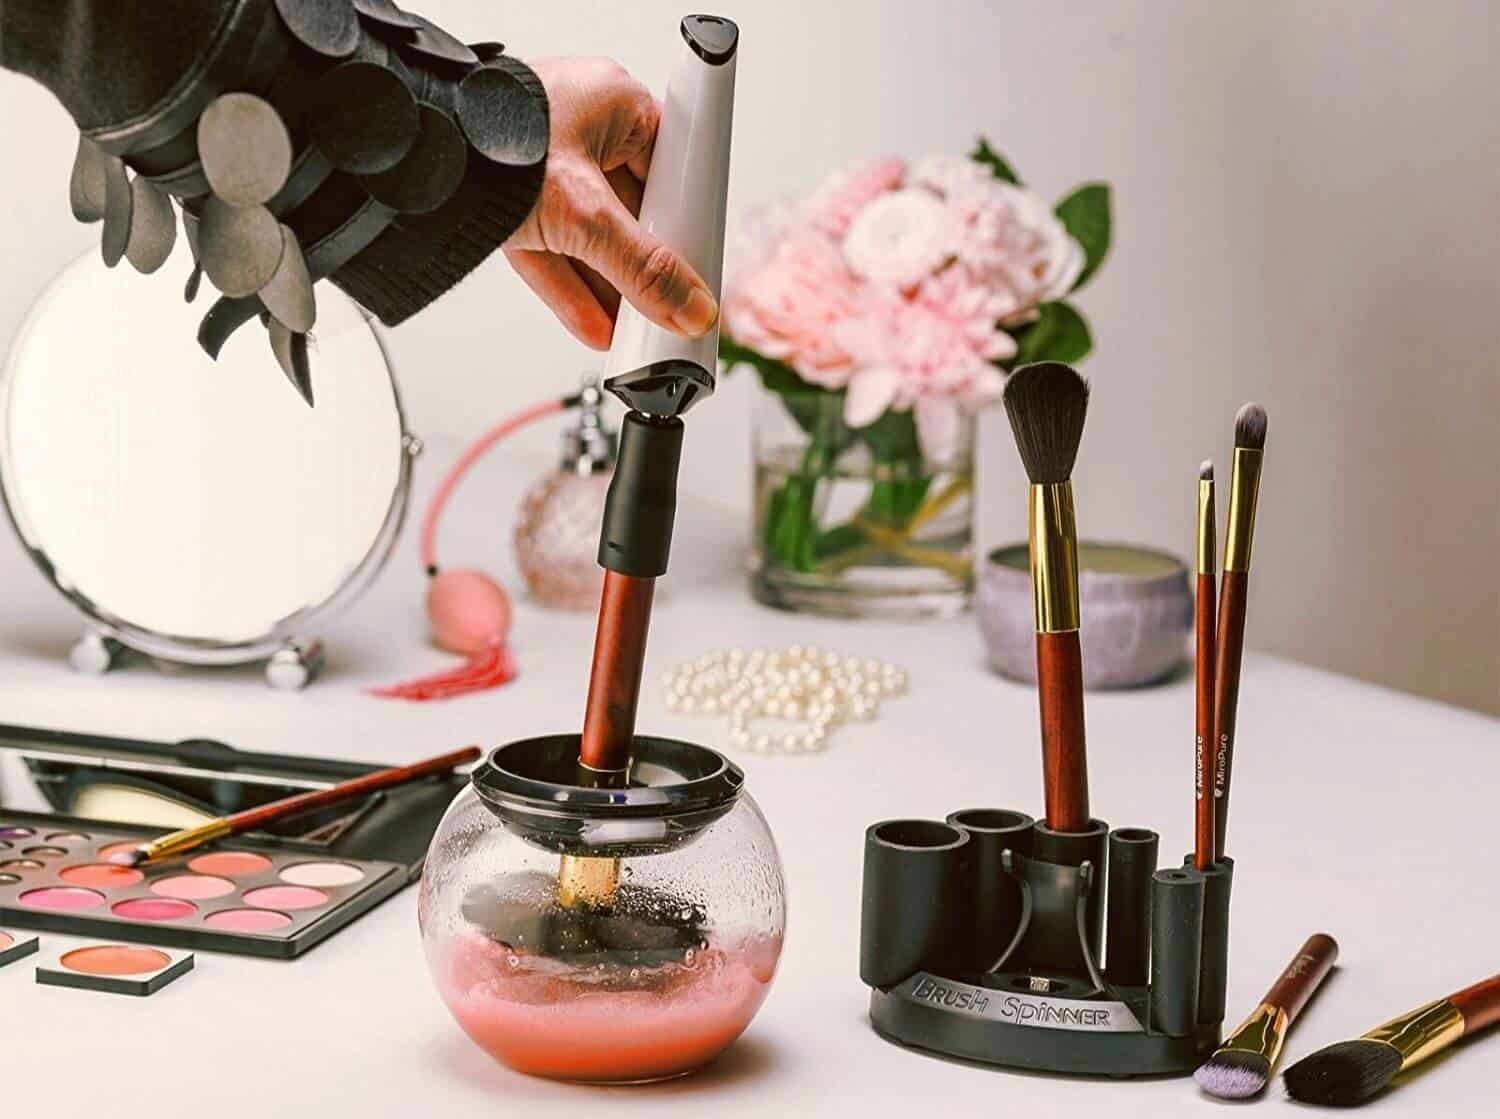 Rechargeable makeup brush cleaner.